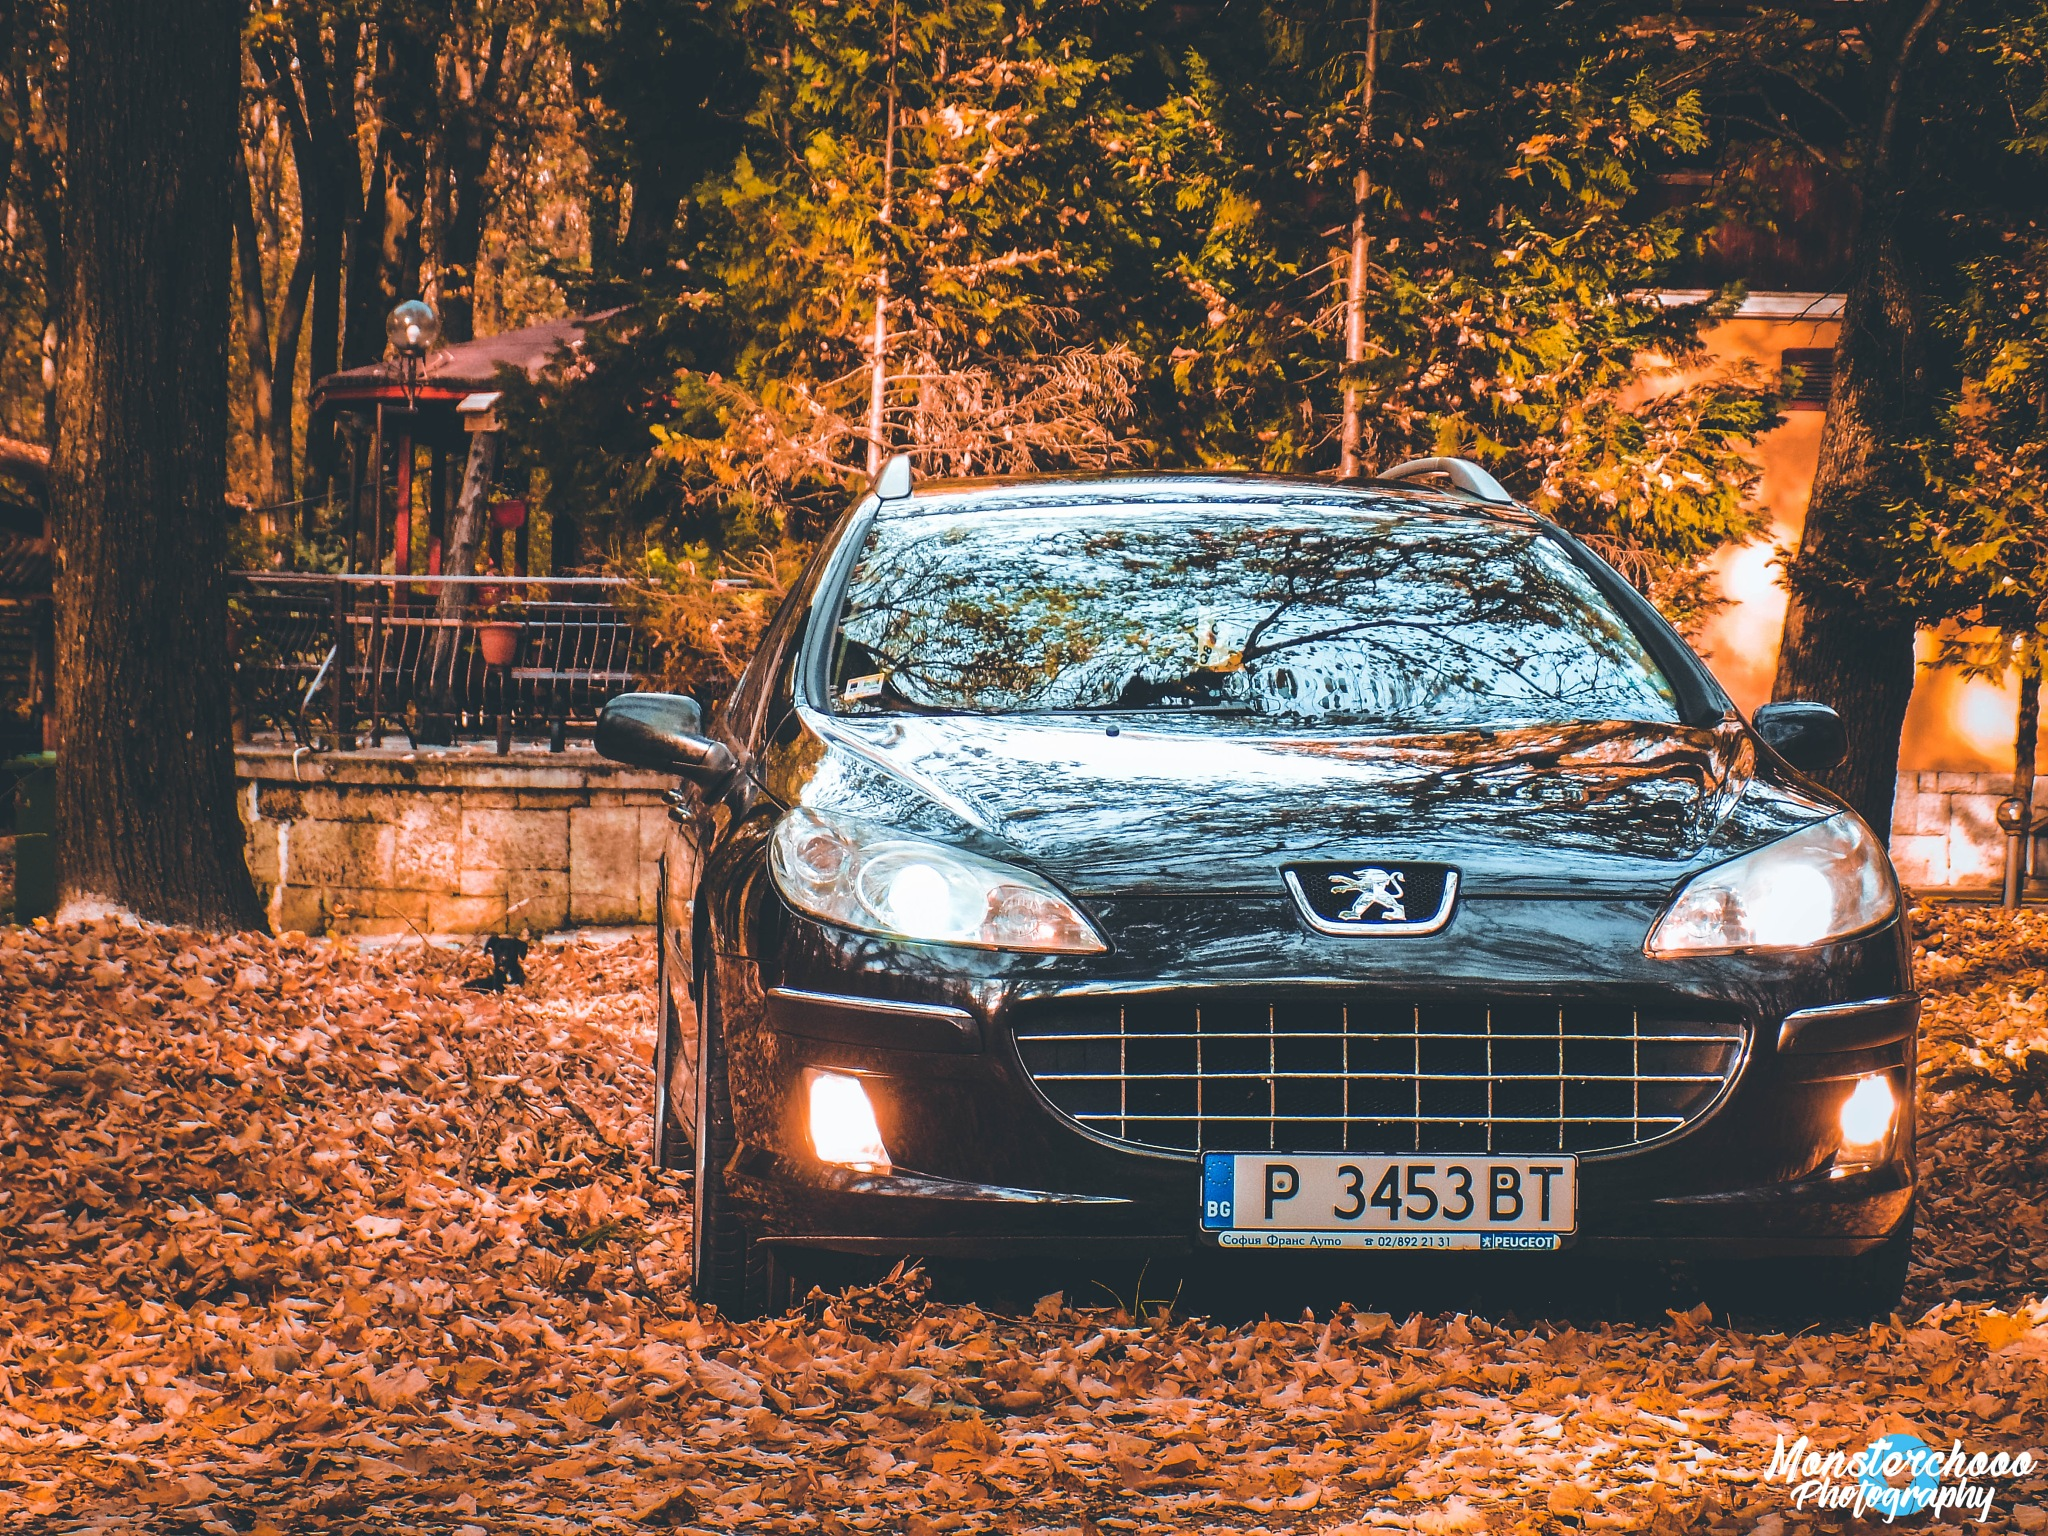 Peugeot autumn by Photography by Monsterchooo